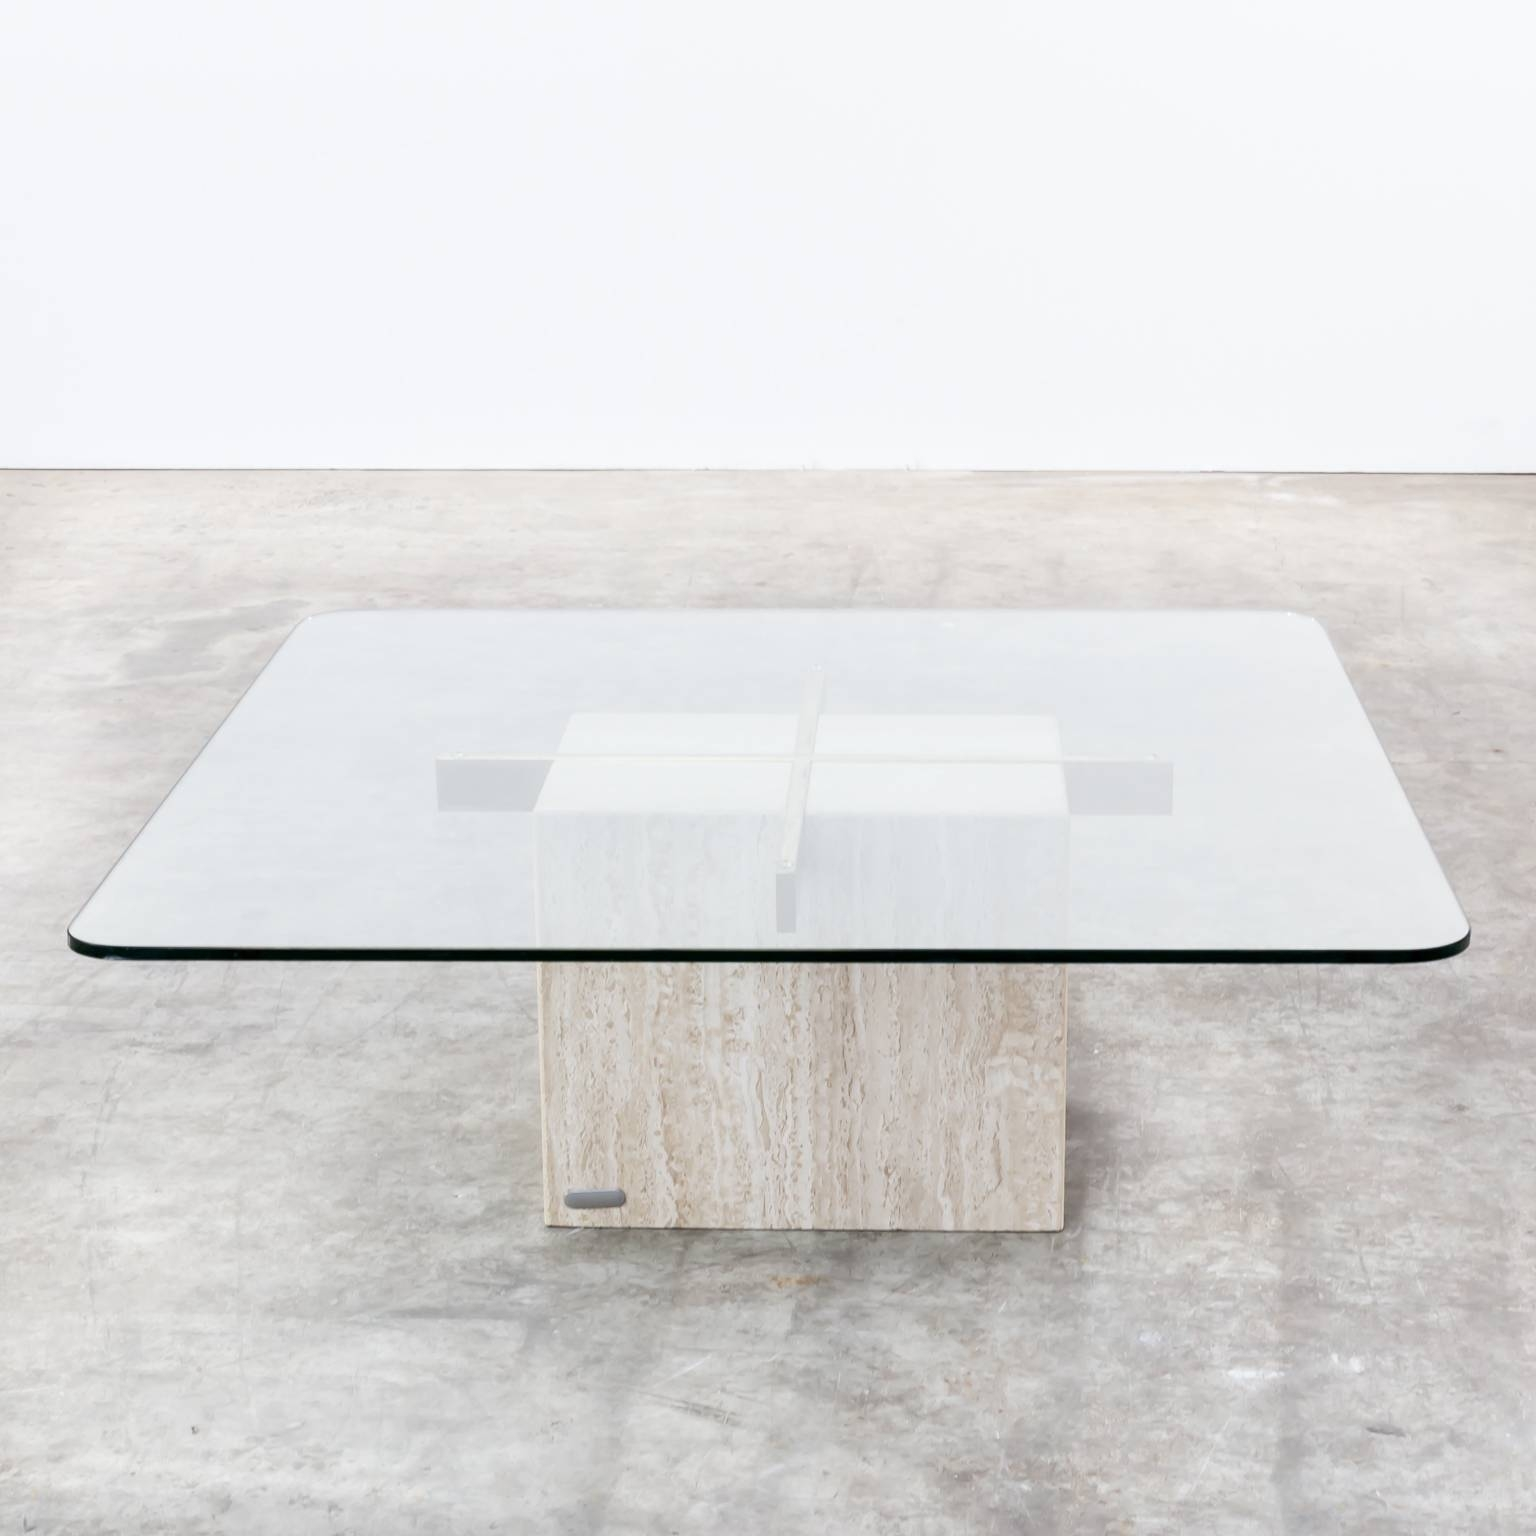 Photos Of Marble Base Glass Top Coffee Table Showing Of Photos - Marble base glass top coffee table